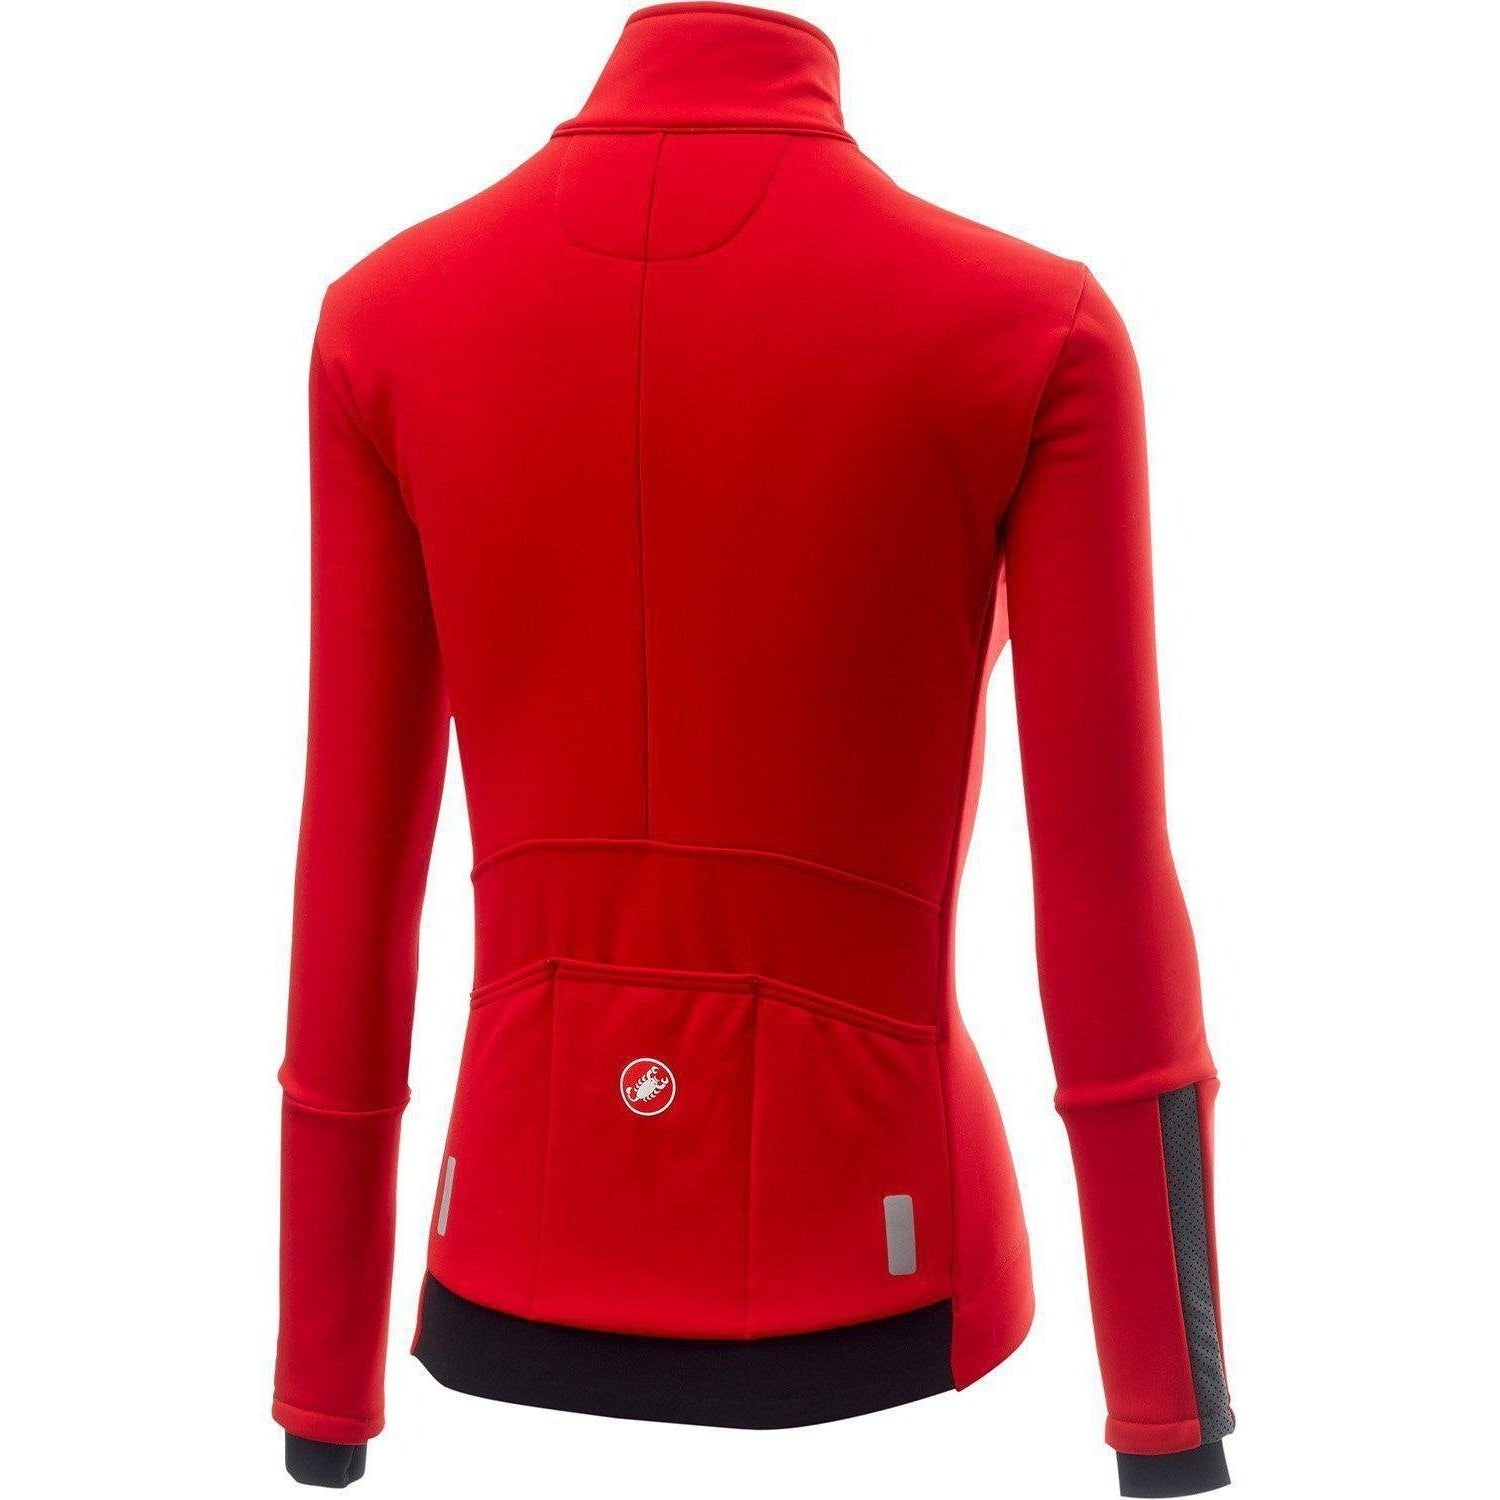 Castelli-Castelli Dinamica Jacket--saddleback-elite-performance-cycling